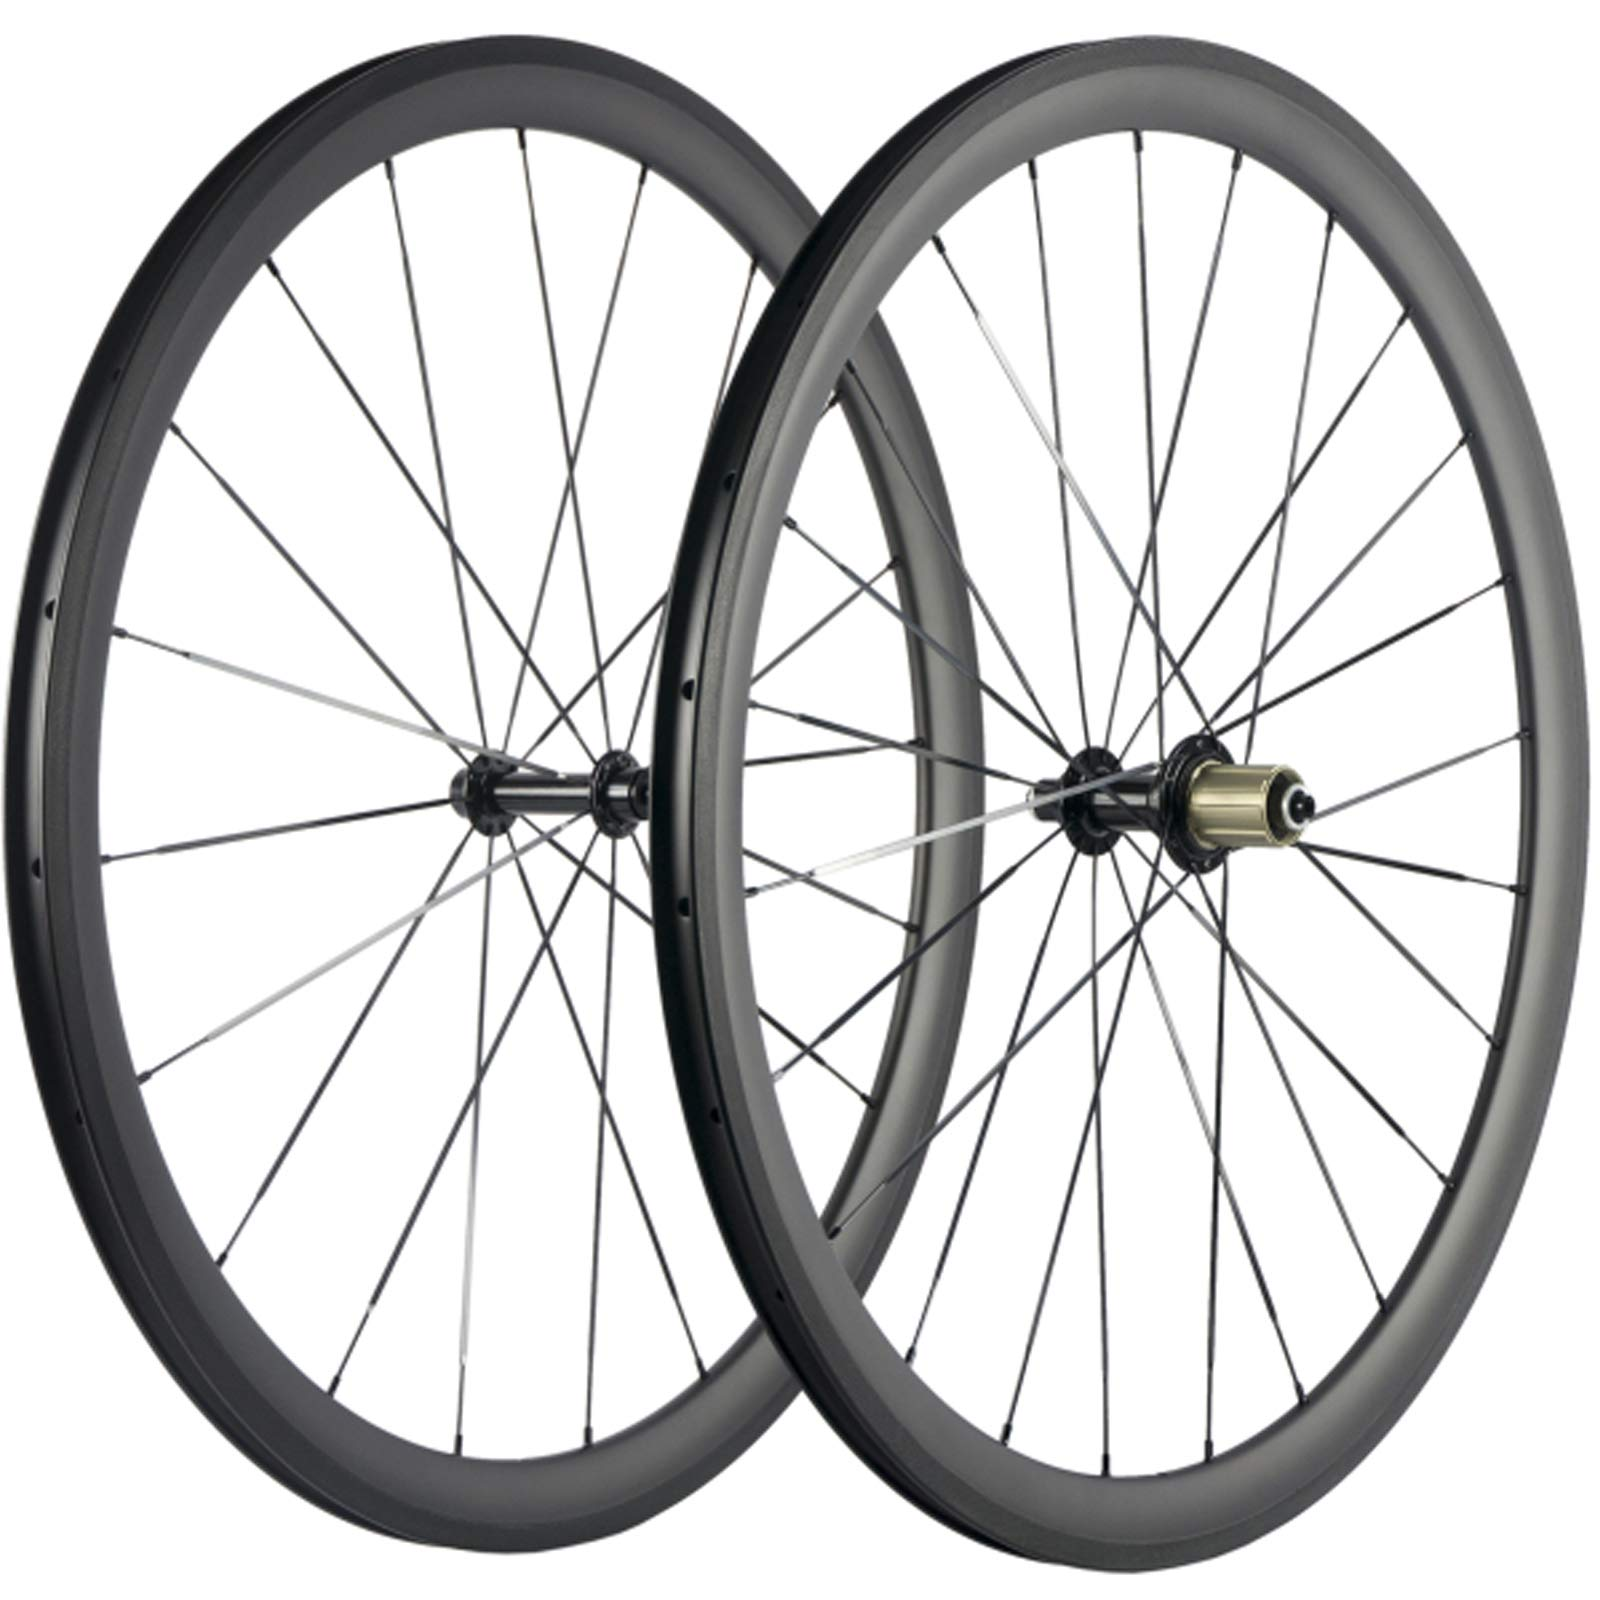 Superteam 38/50/60/88mm Carbon Wheelset 700c Clincher 23mm Wheel UD Matte Finish (38mm/23mm) by Superteam